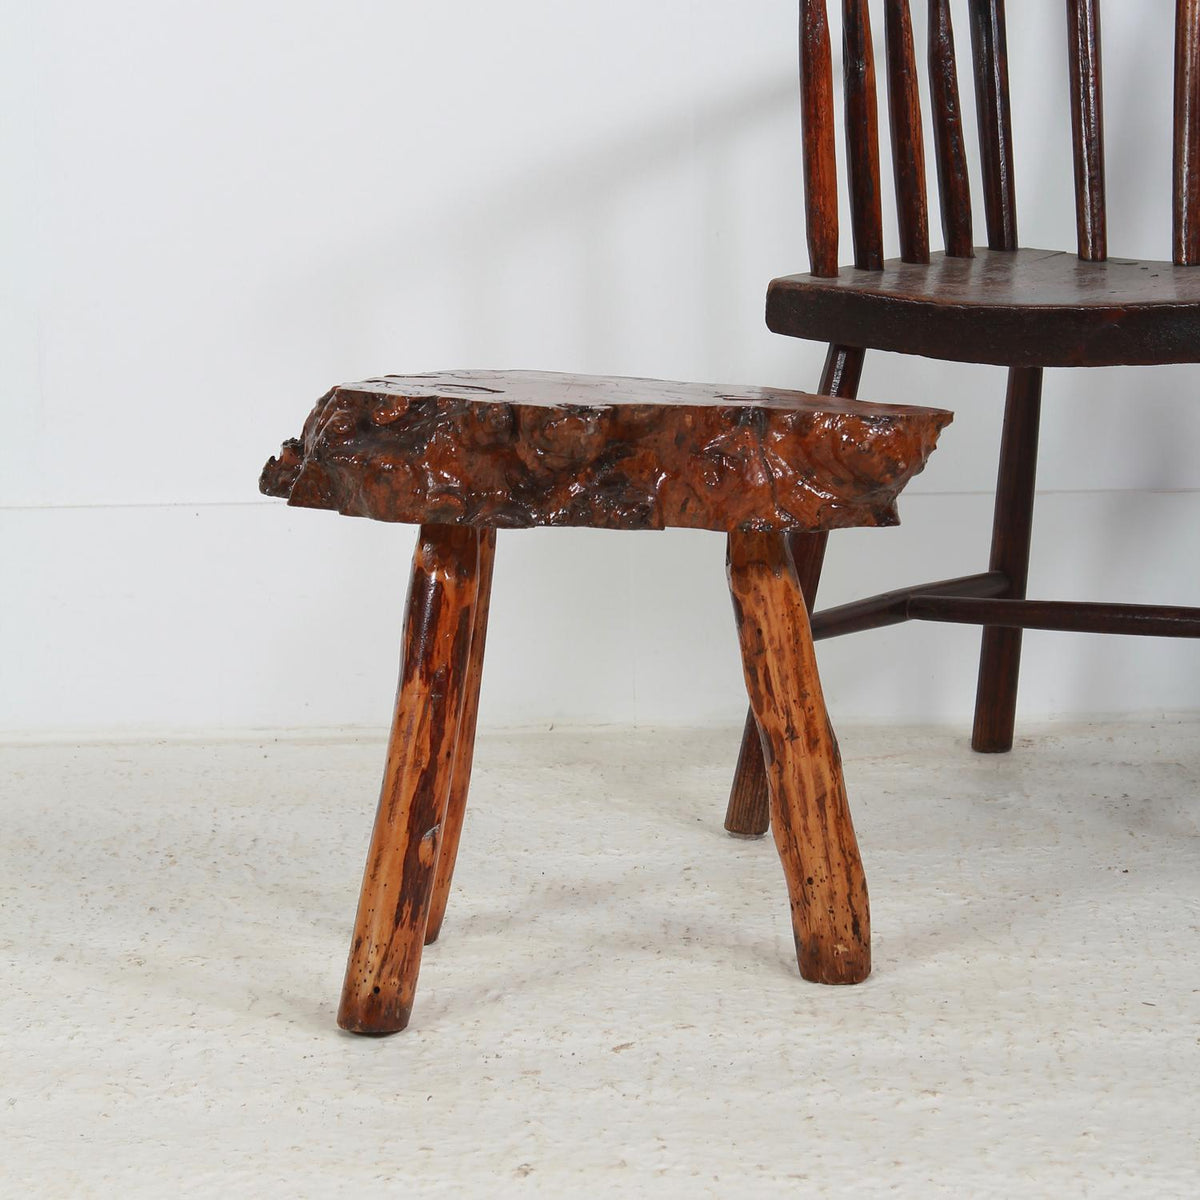 UNIQUE PETRIFIED GNARLY WOOD SIDE TABLE